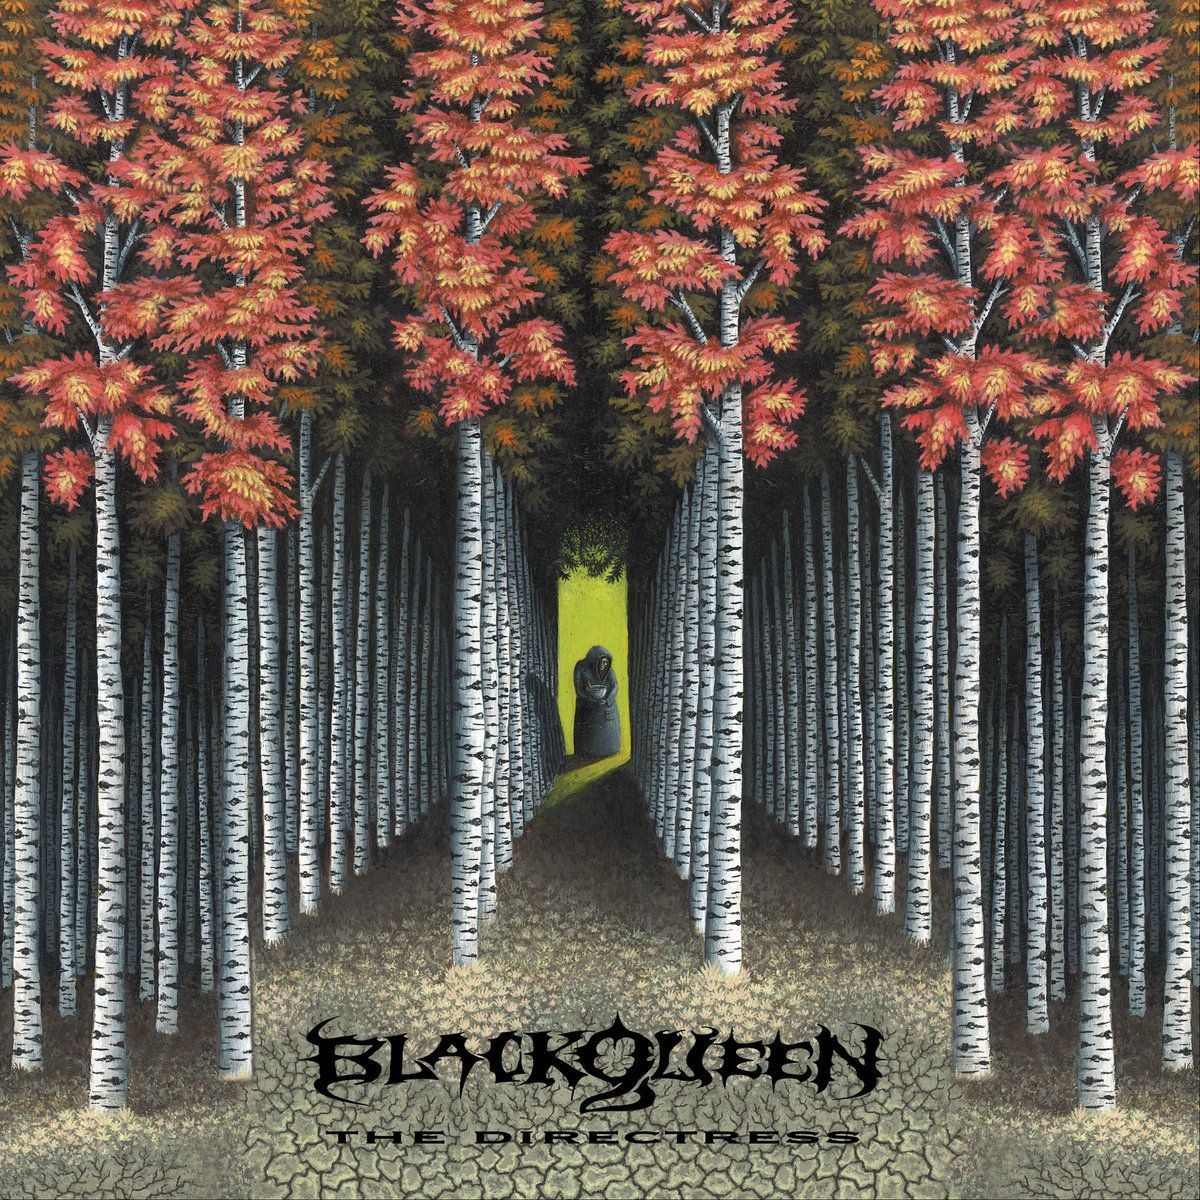 Review for Black Queen - The Directress